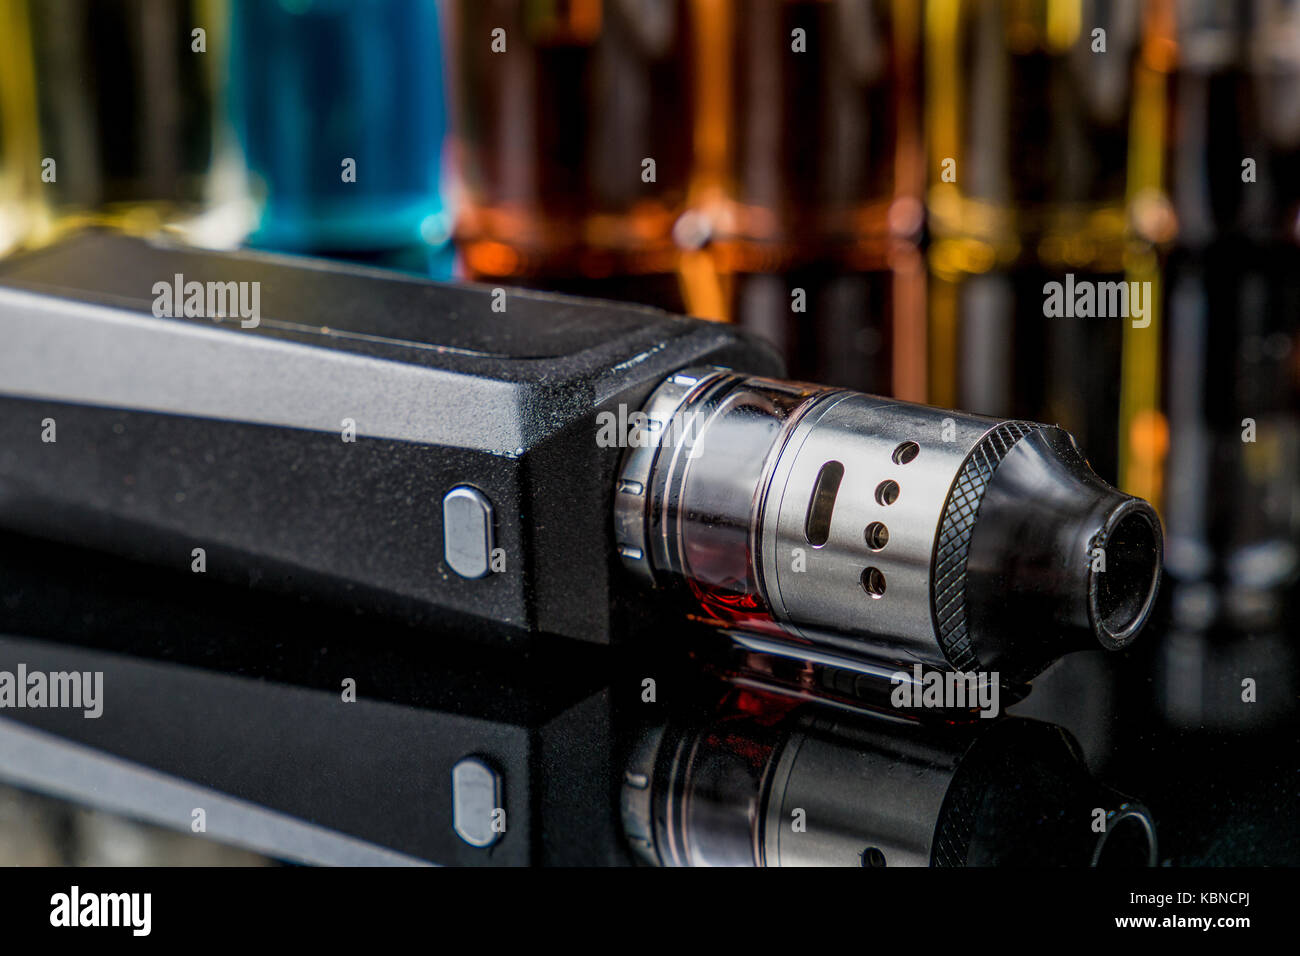 Electronic cigarette on the side with e-juice bottles in the background - Stock Image